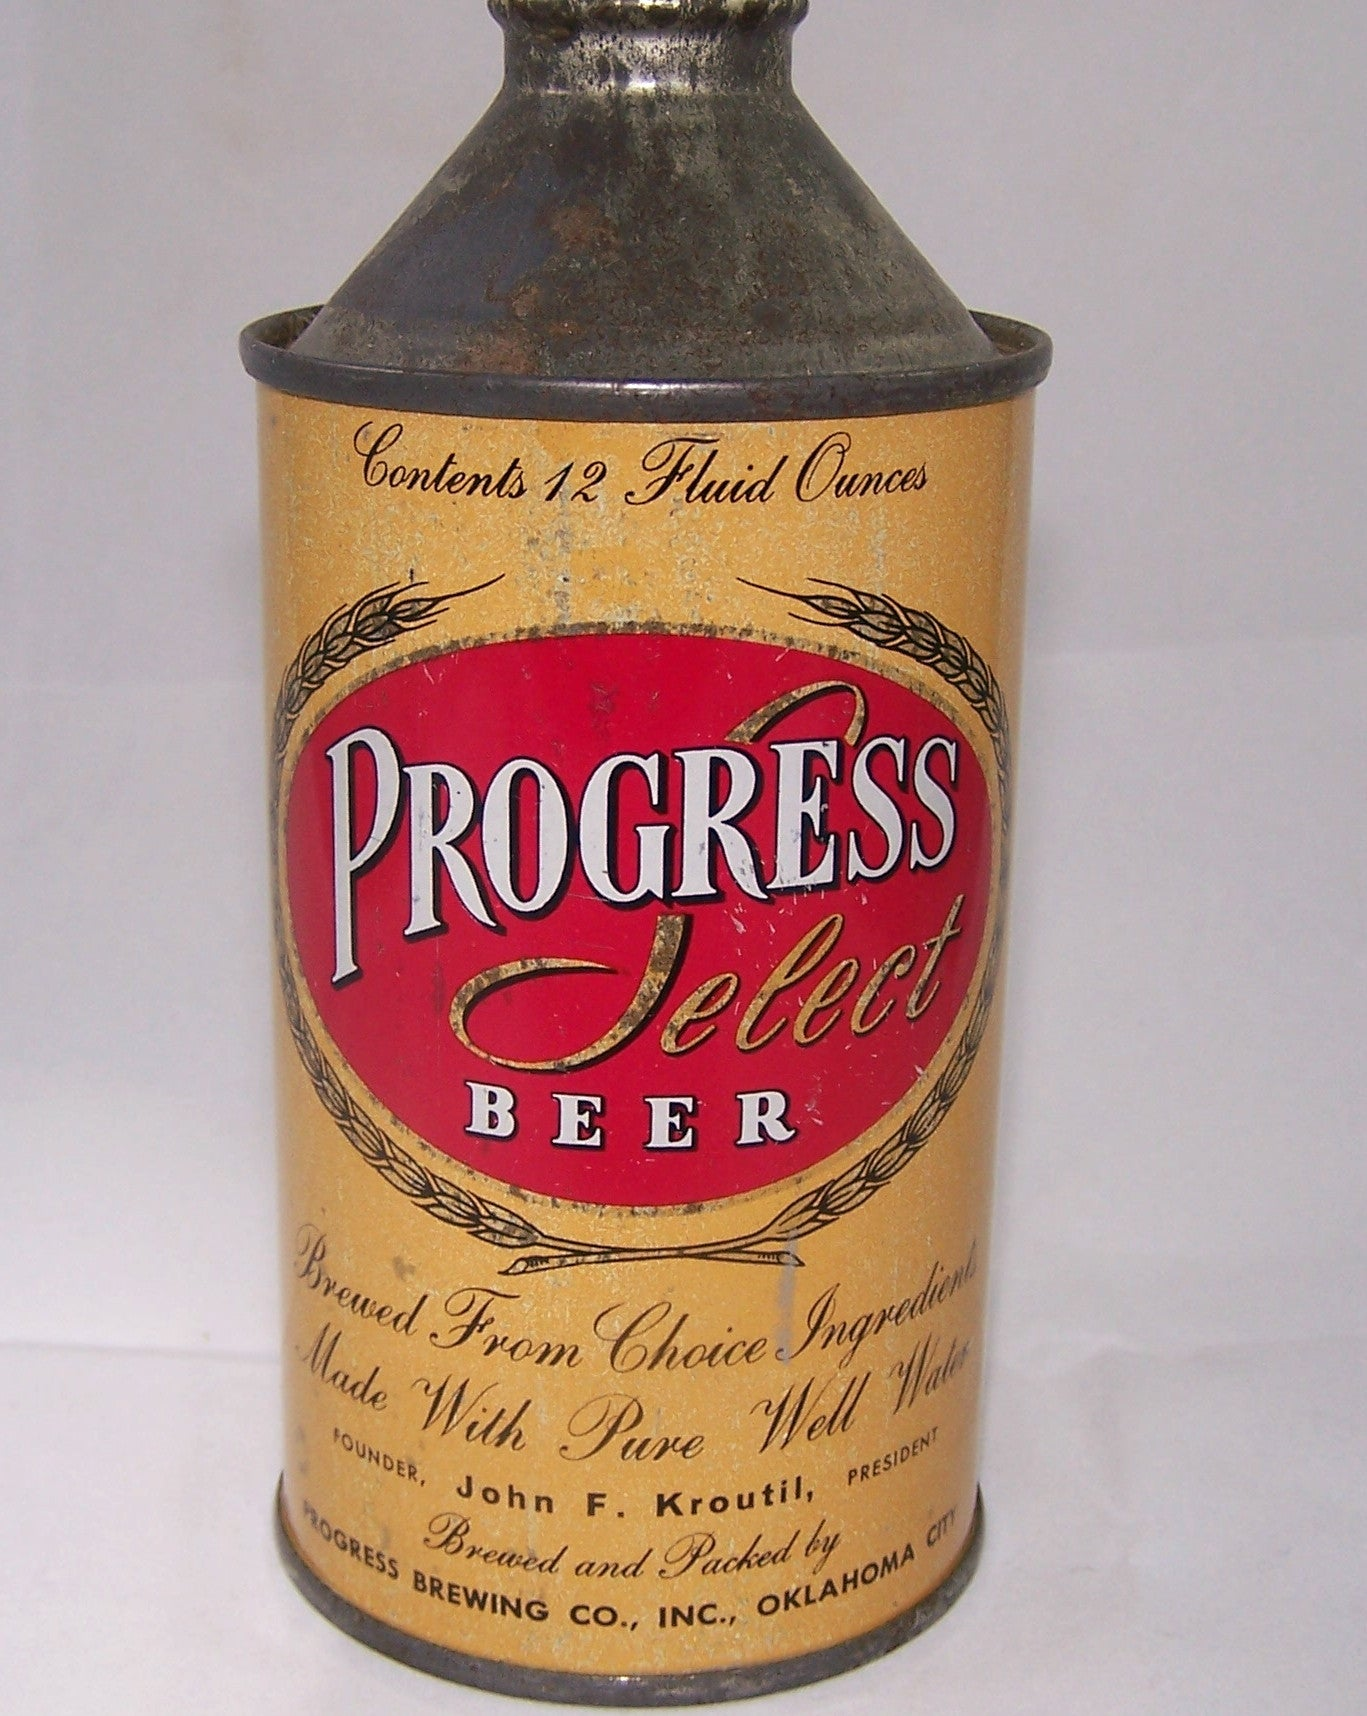 Progress Select Beer Non-IRTP, USBC 179-30, Grade 1- Sold 4/5/15